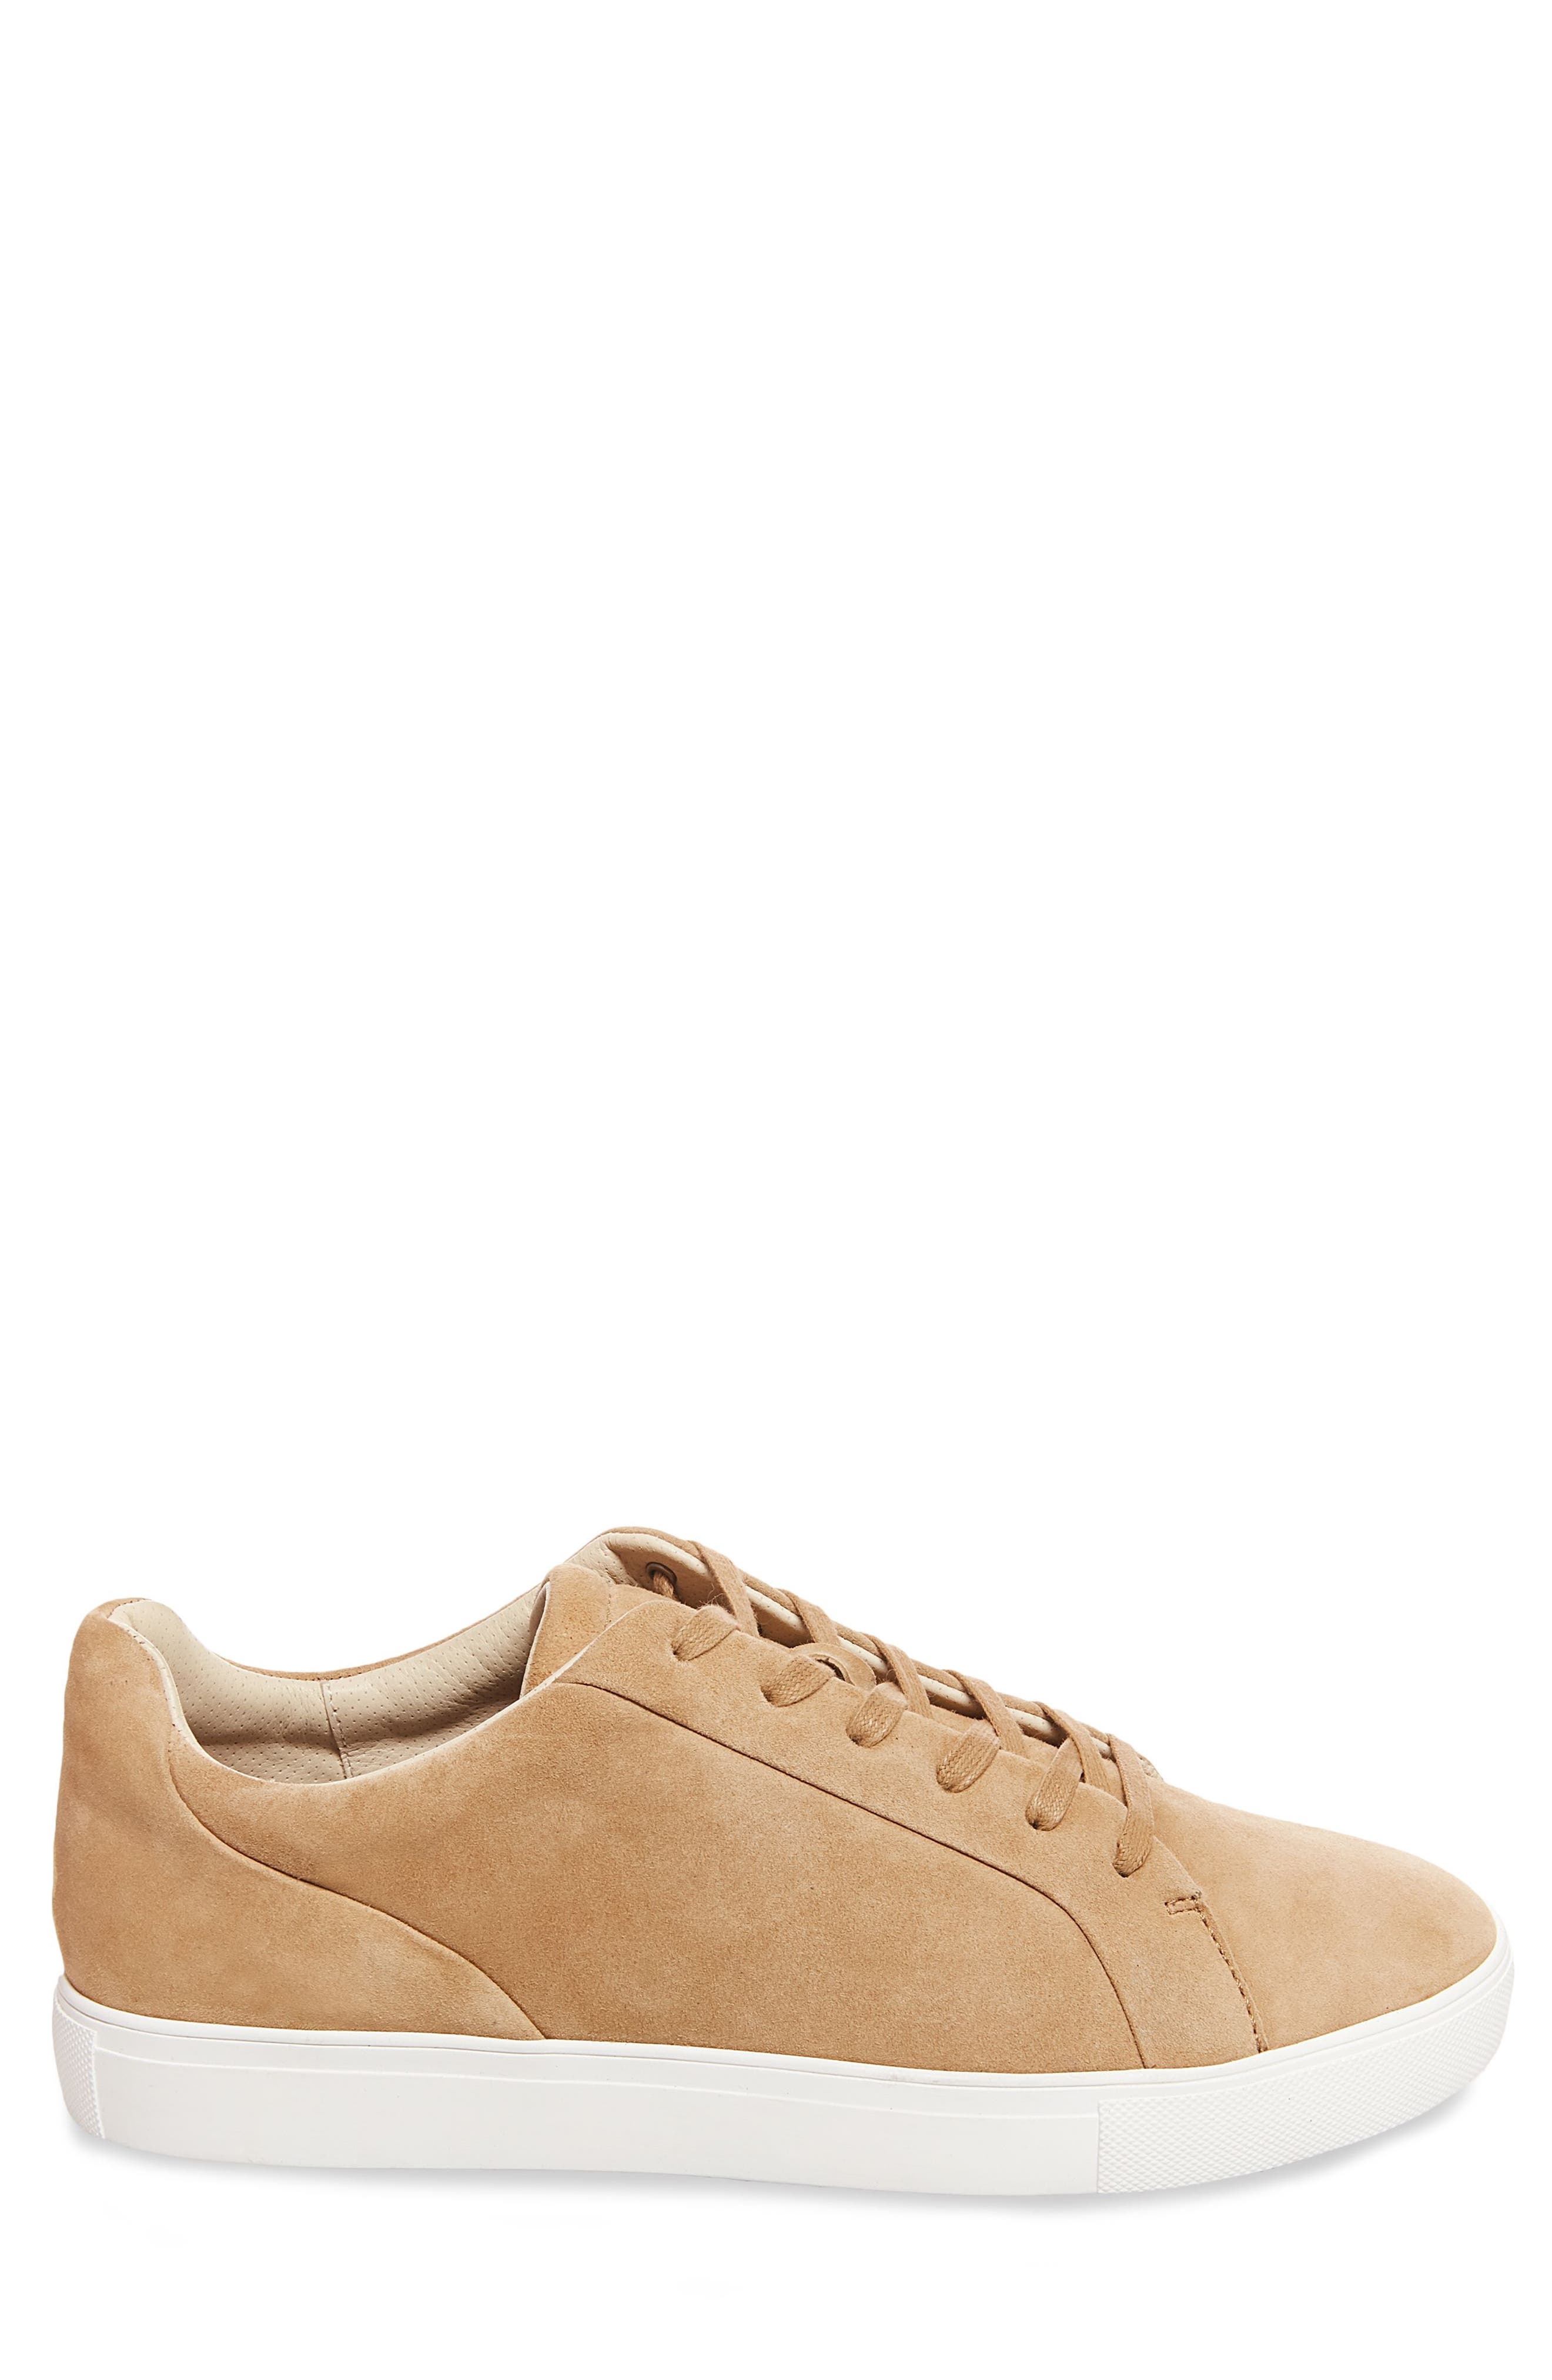 x GQ James Sneaker,                             Alternate thumbnail 3, color,                             Tan Suede